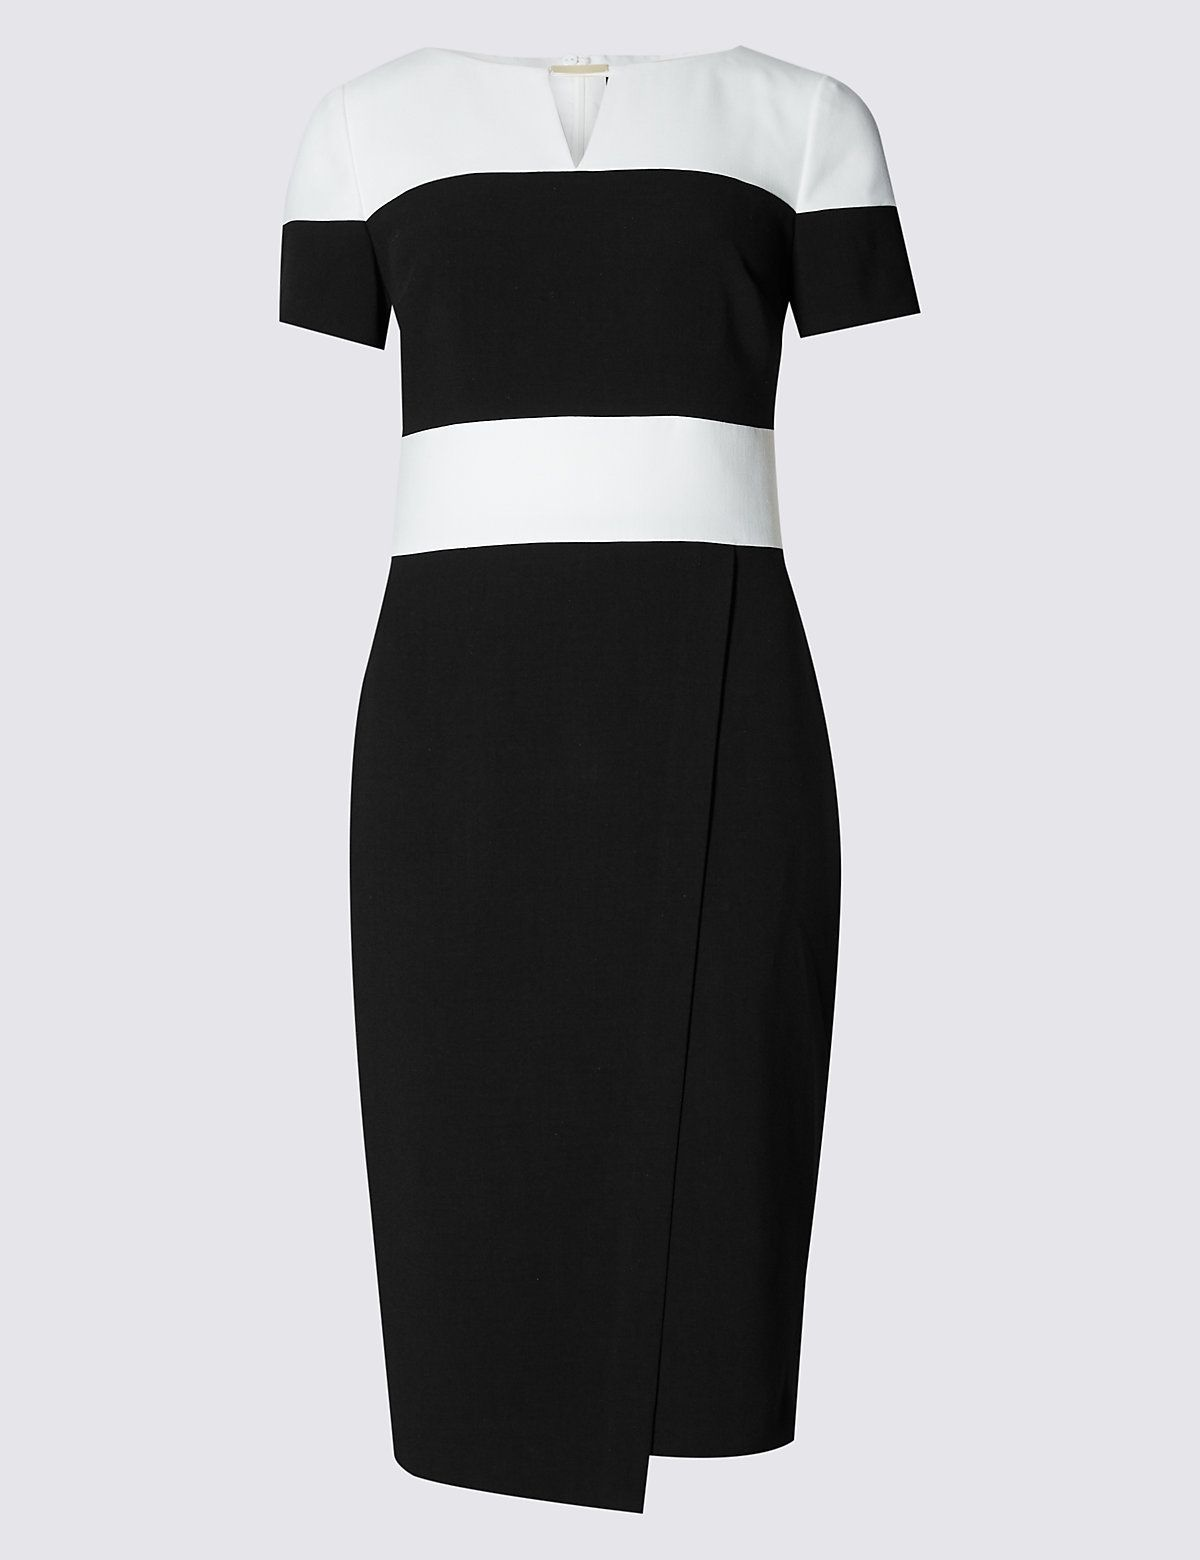 M&S Occasionwear Outfits Wedding Guest Bridesmaid Dresses | Color ...